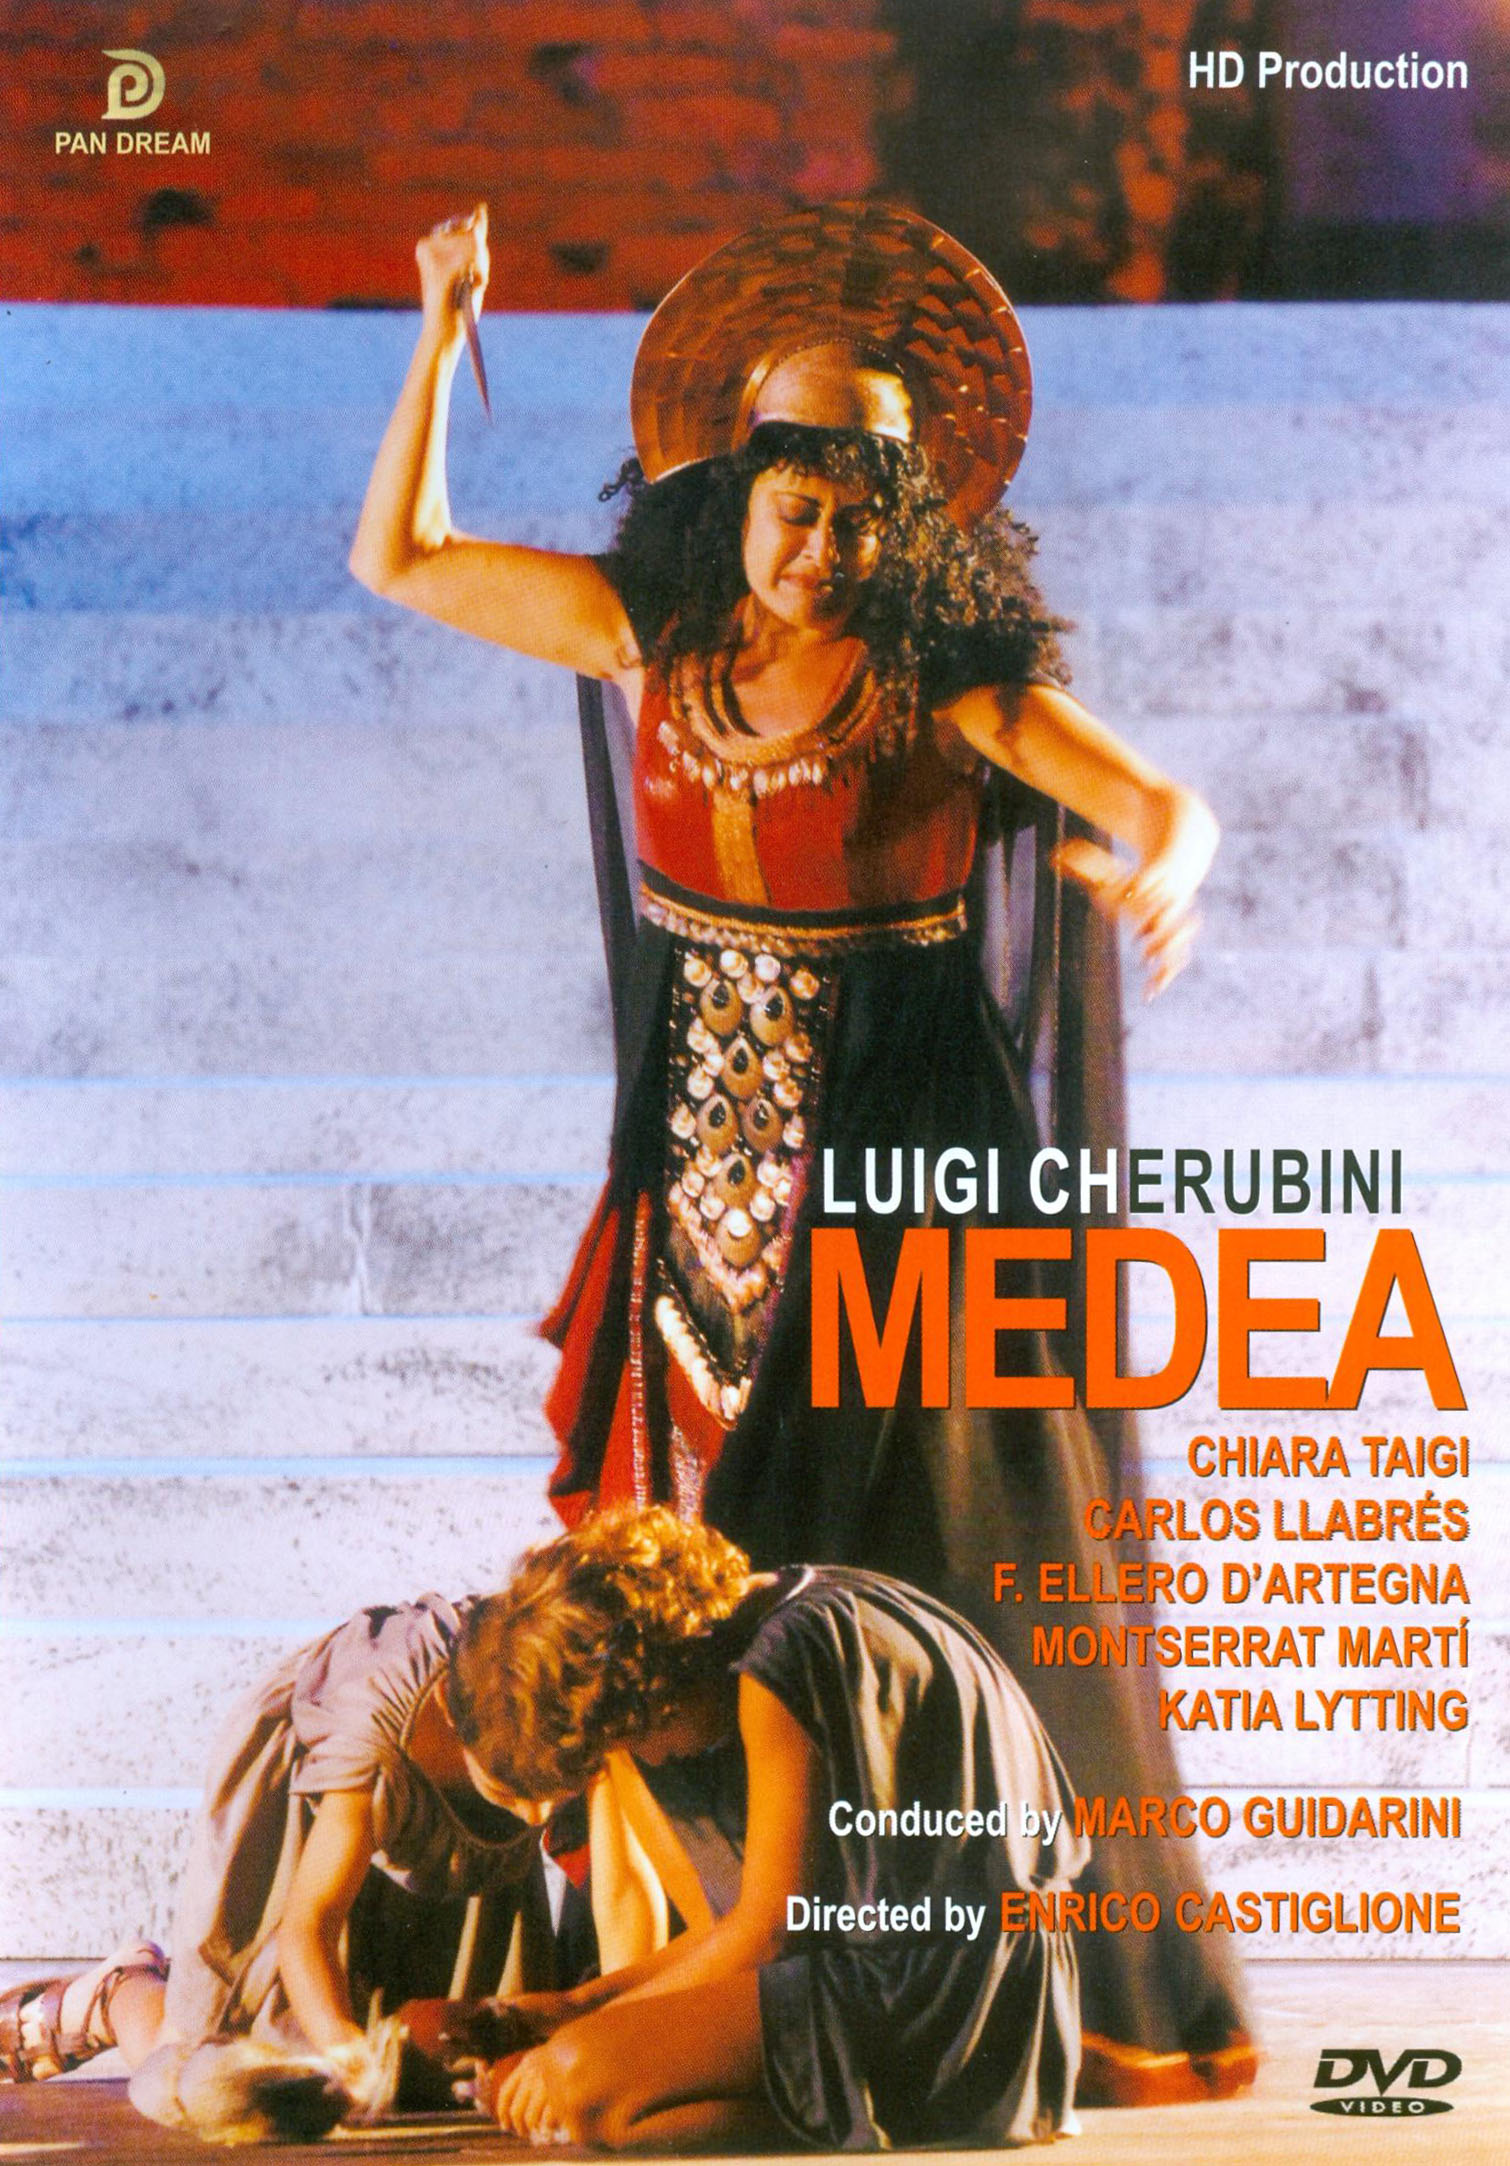 Medea (Greek Theatre of Taormina)